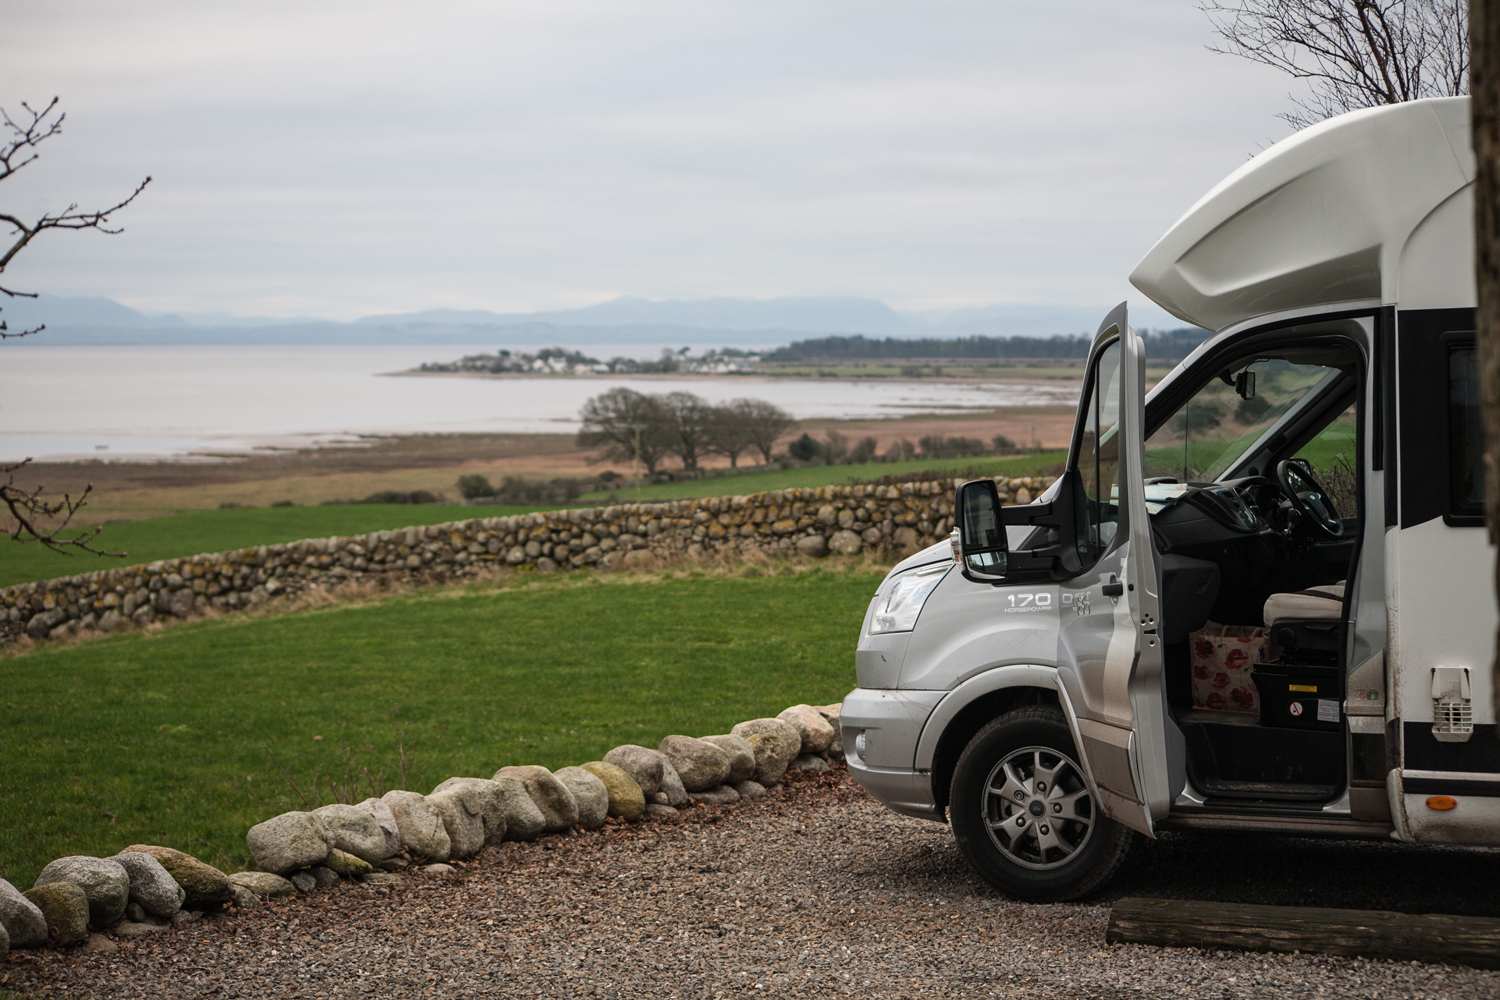 A motorhome parked at the side of an lake on a dull day